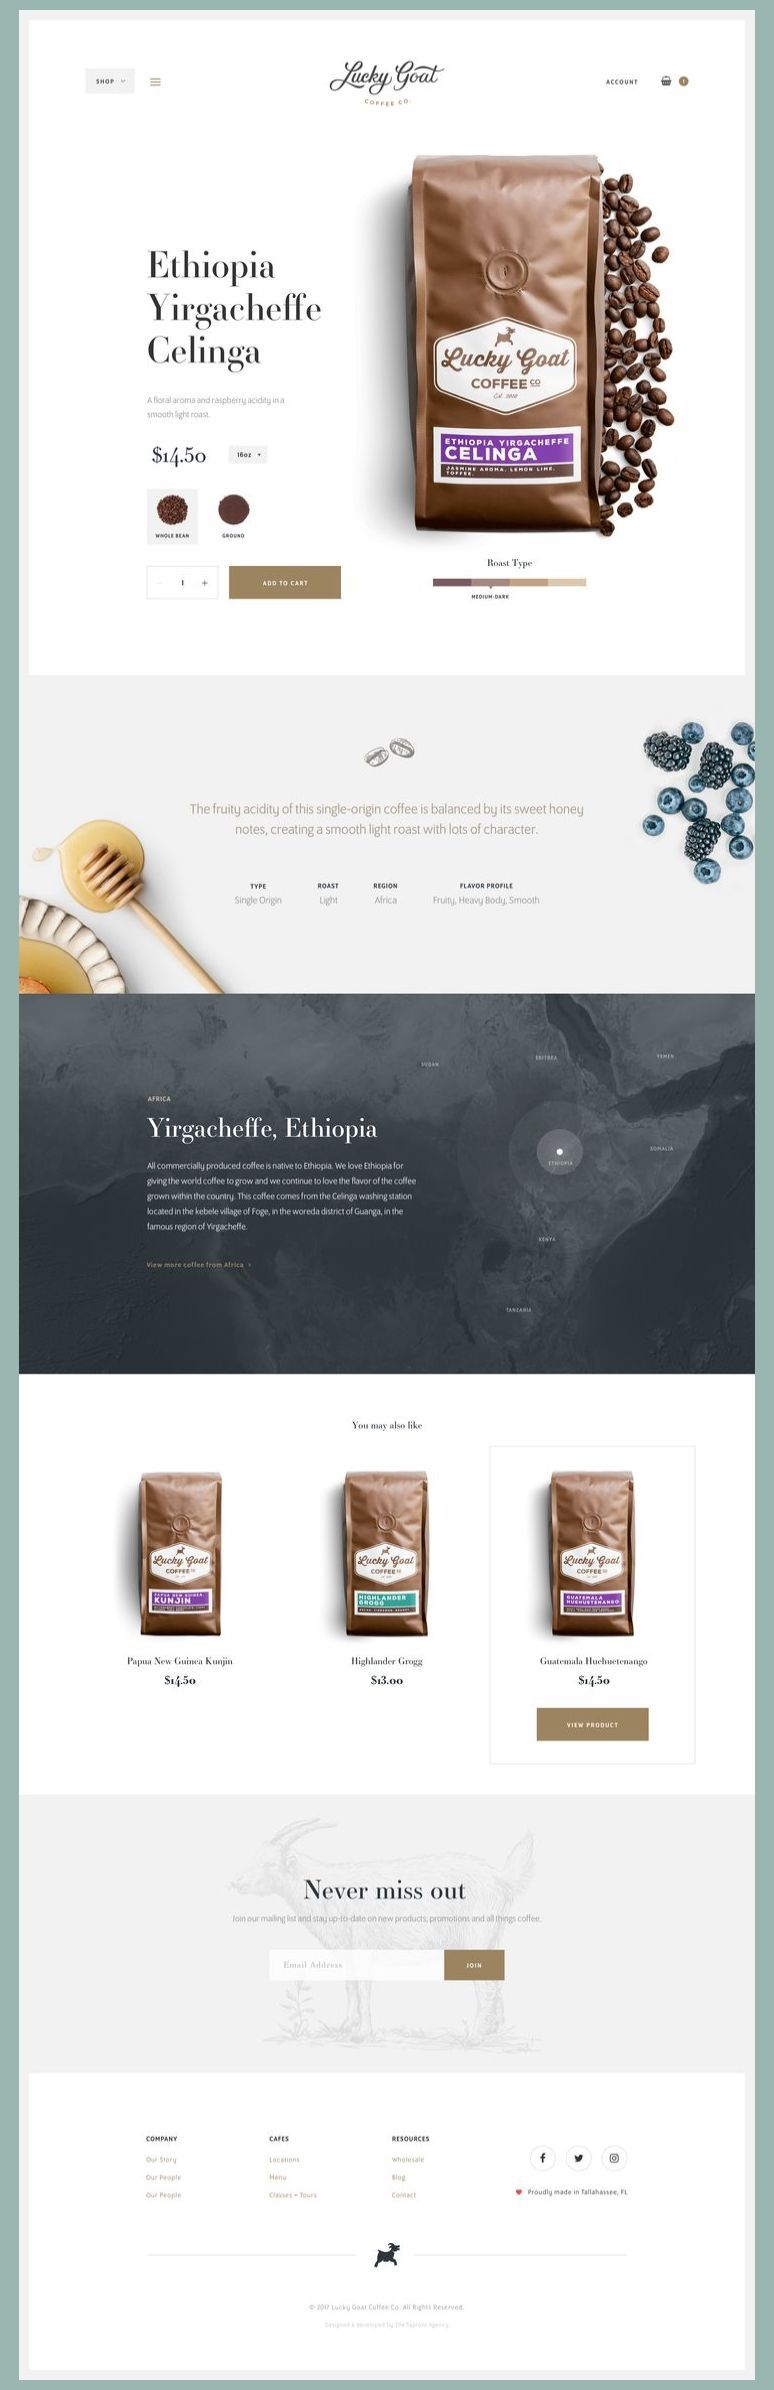 Release Your Ecommerce Shop And Start Offering Online With Ucraft Receive Instant Payments On In 2020 Ecommerce Web Design Web Layout Design Wordpress Web Design